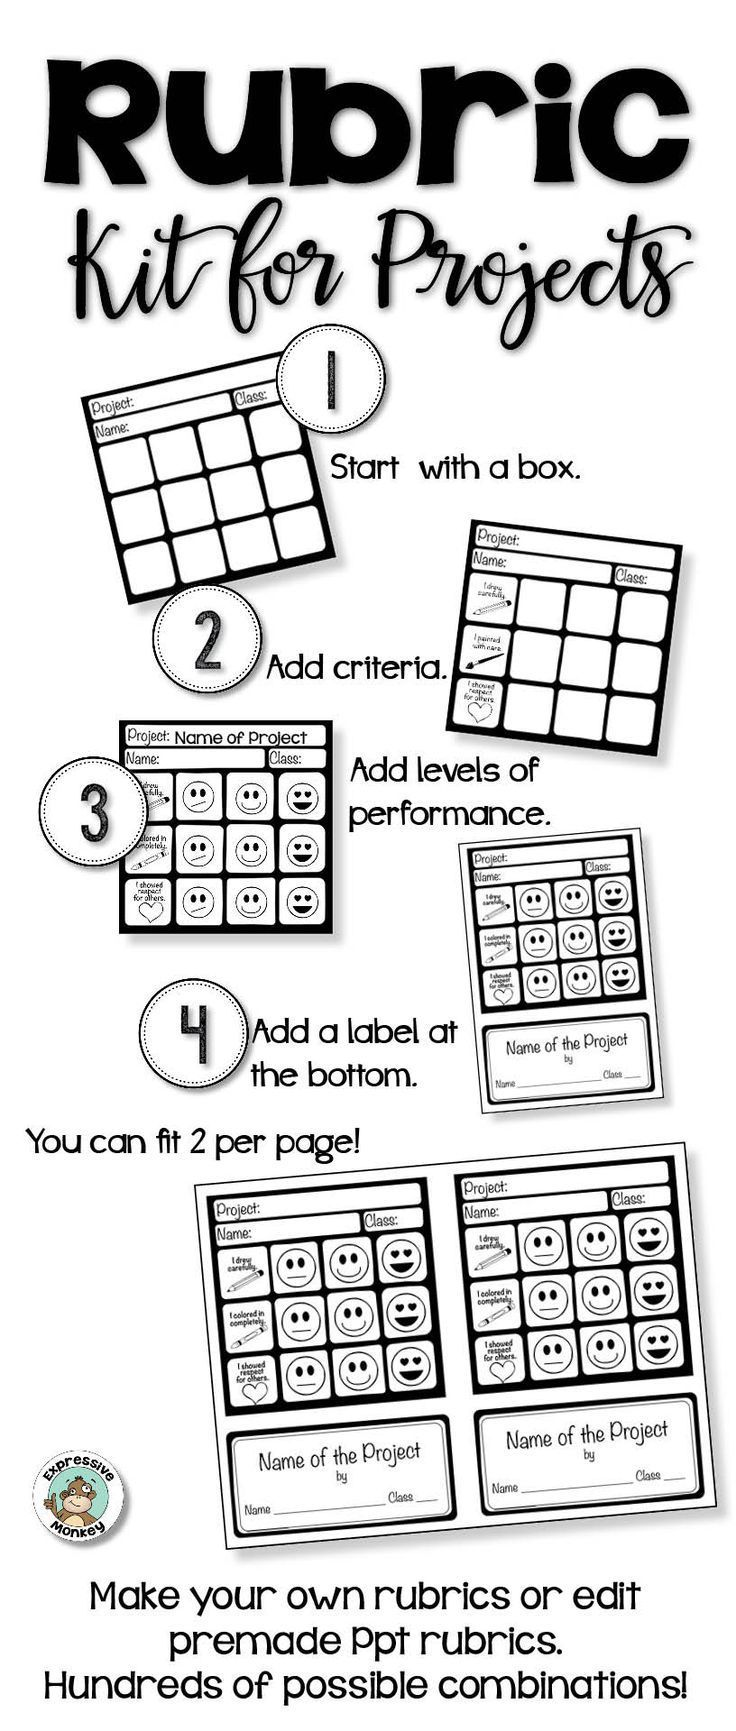 51 best Reflection and Assessment images on Pinterest